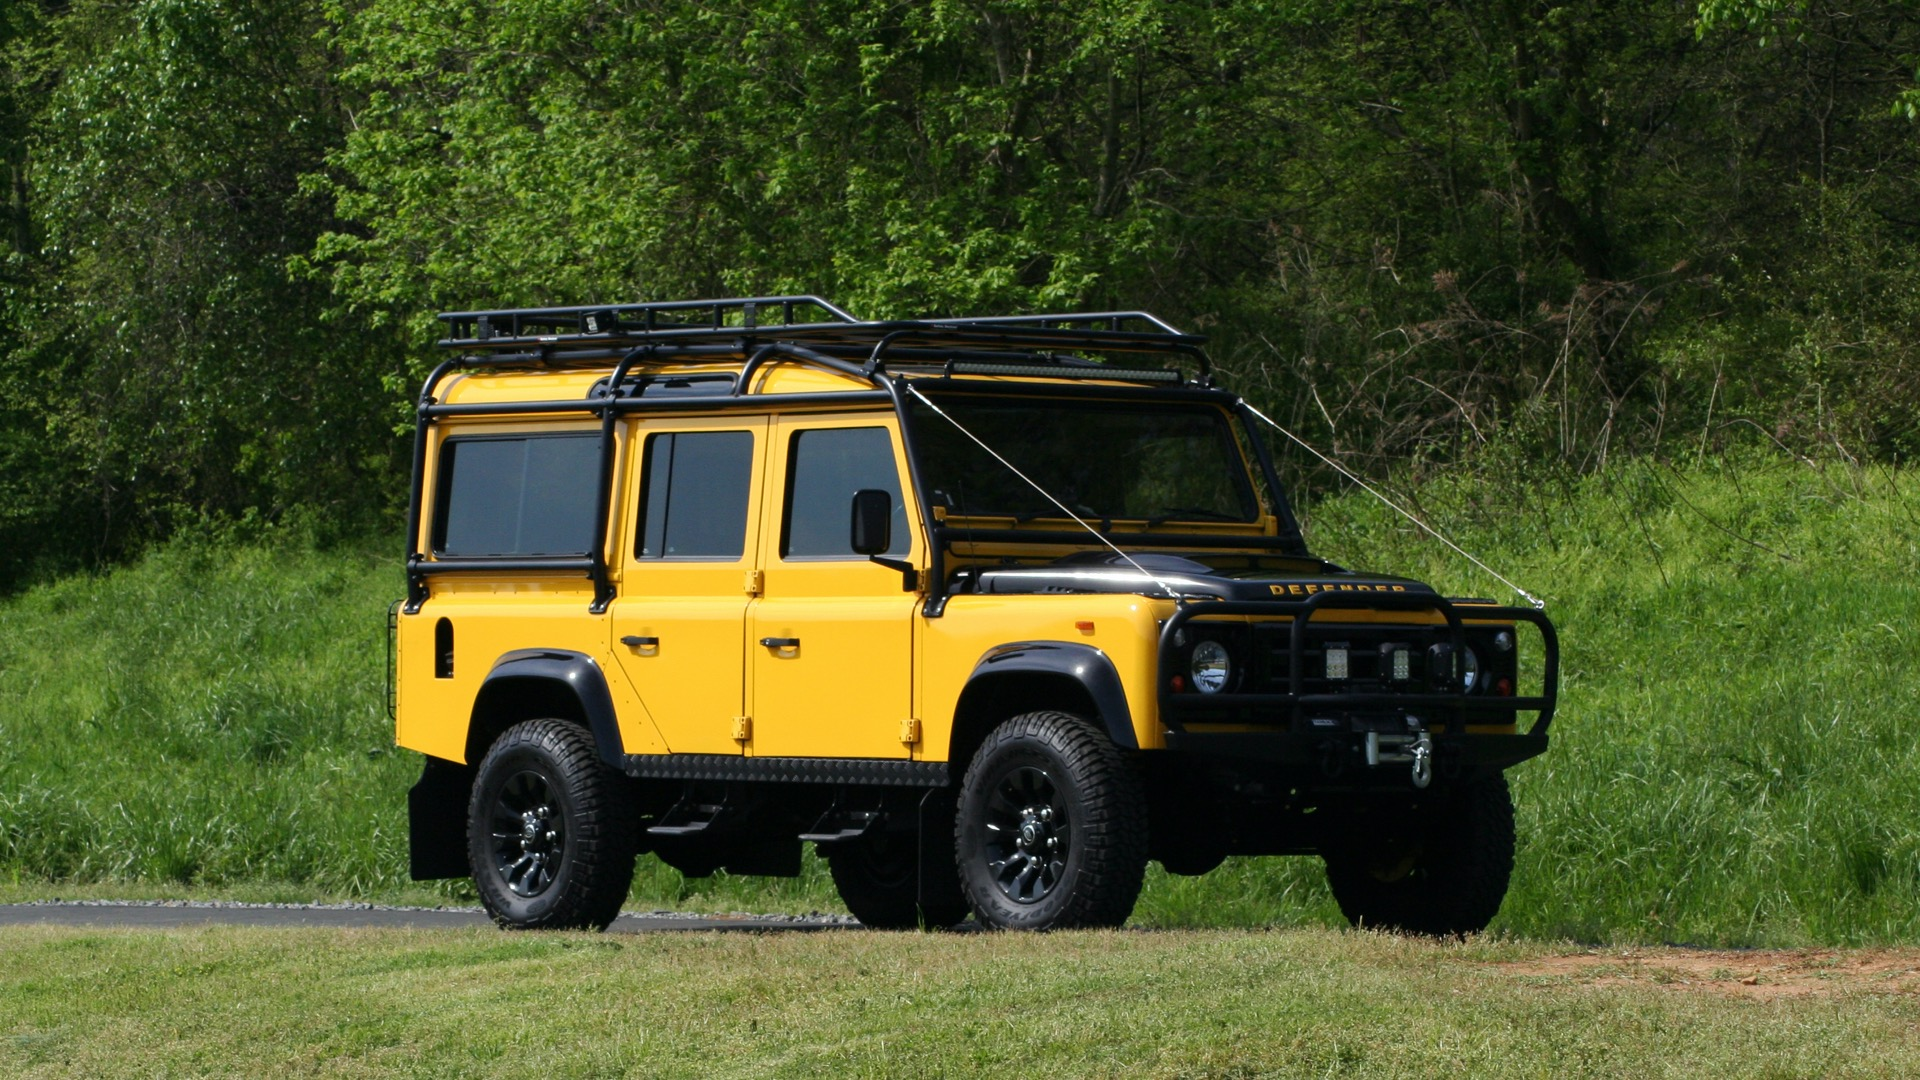 Used 1989 Land Rover Defender 110 4x4 Custom / Fully Restored / Fuel Injected V8 / 5-Spd Man for sale $60,000 at Formula Imports in Charlotte NC 28227 17